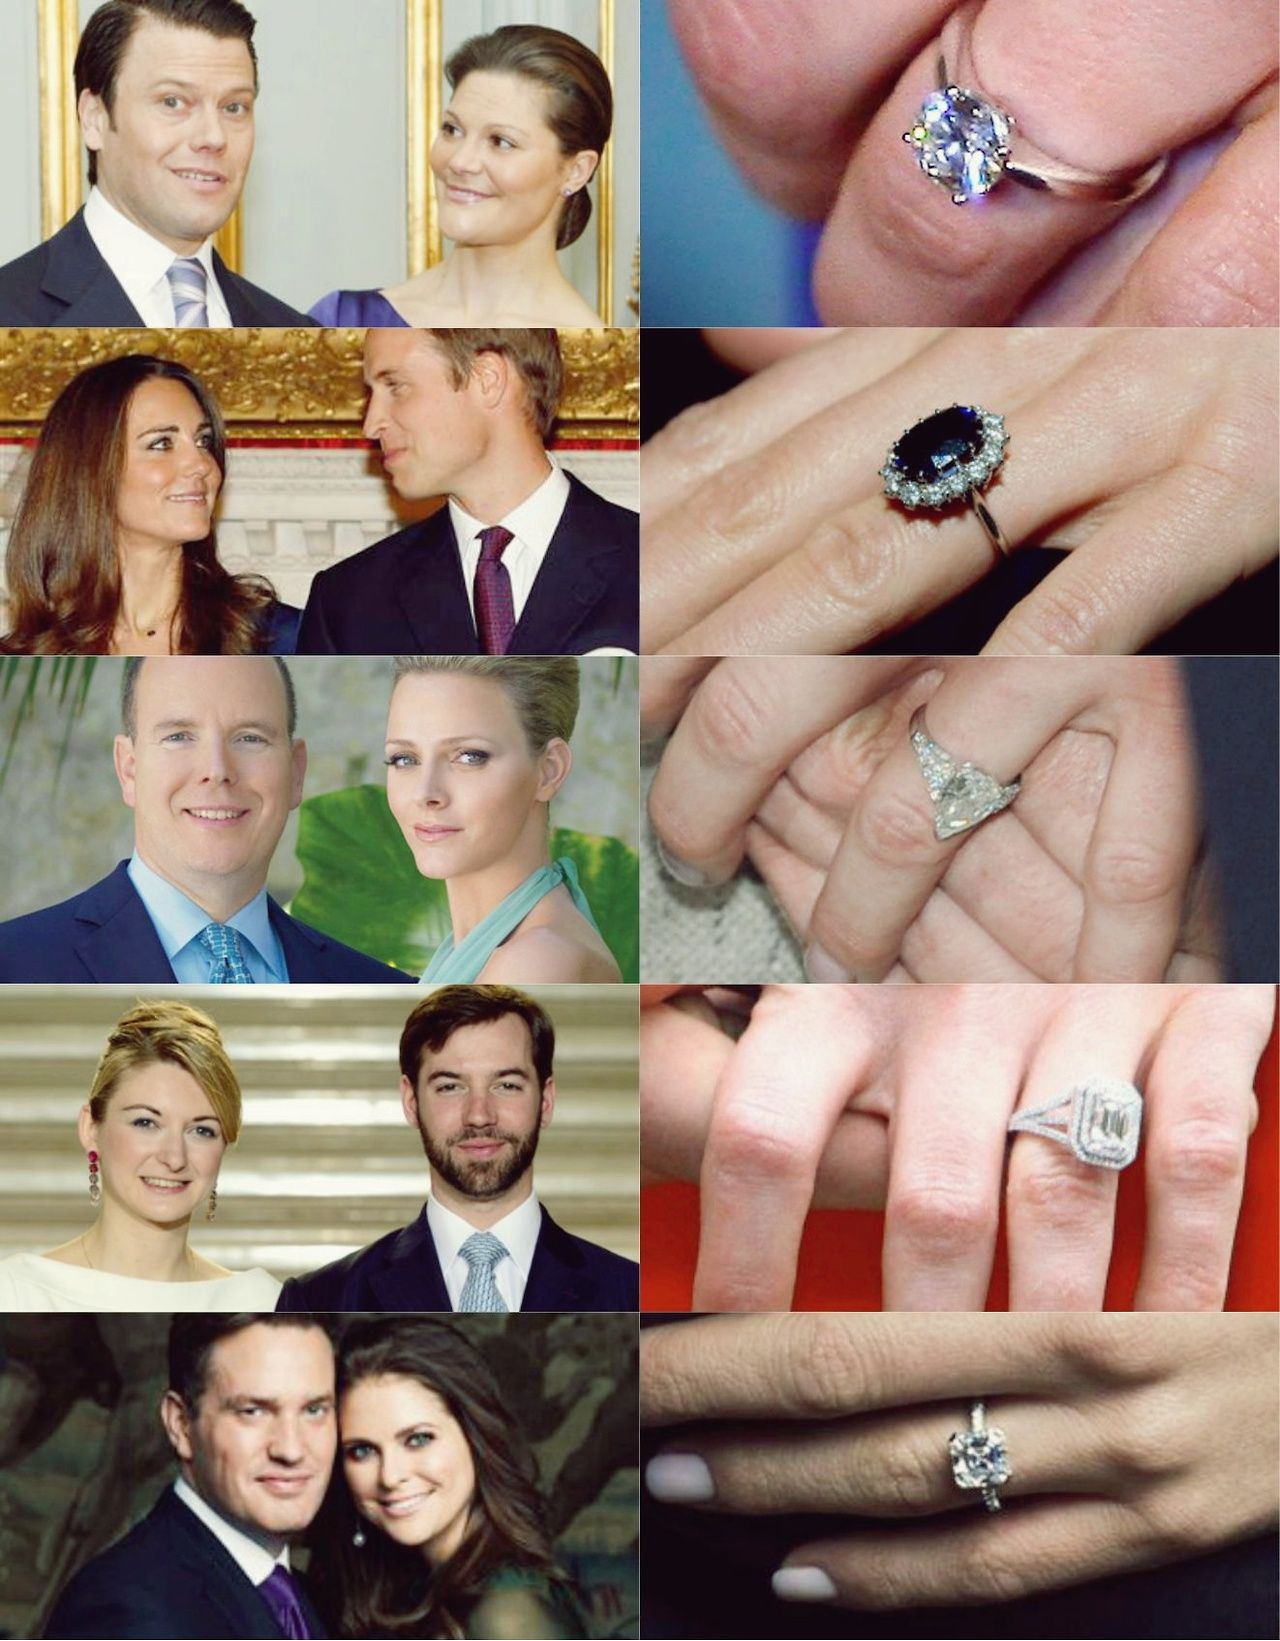 smiling couple on royalty pulling womans young having ring engagement finger photo attractive man rings